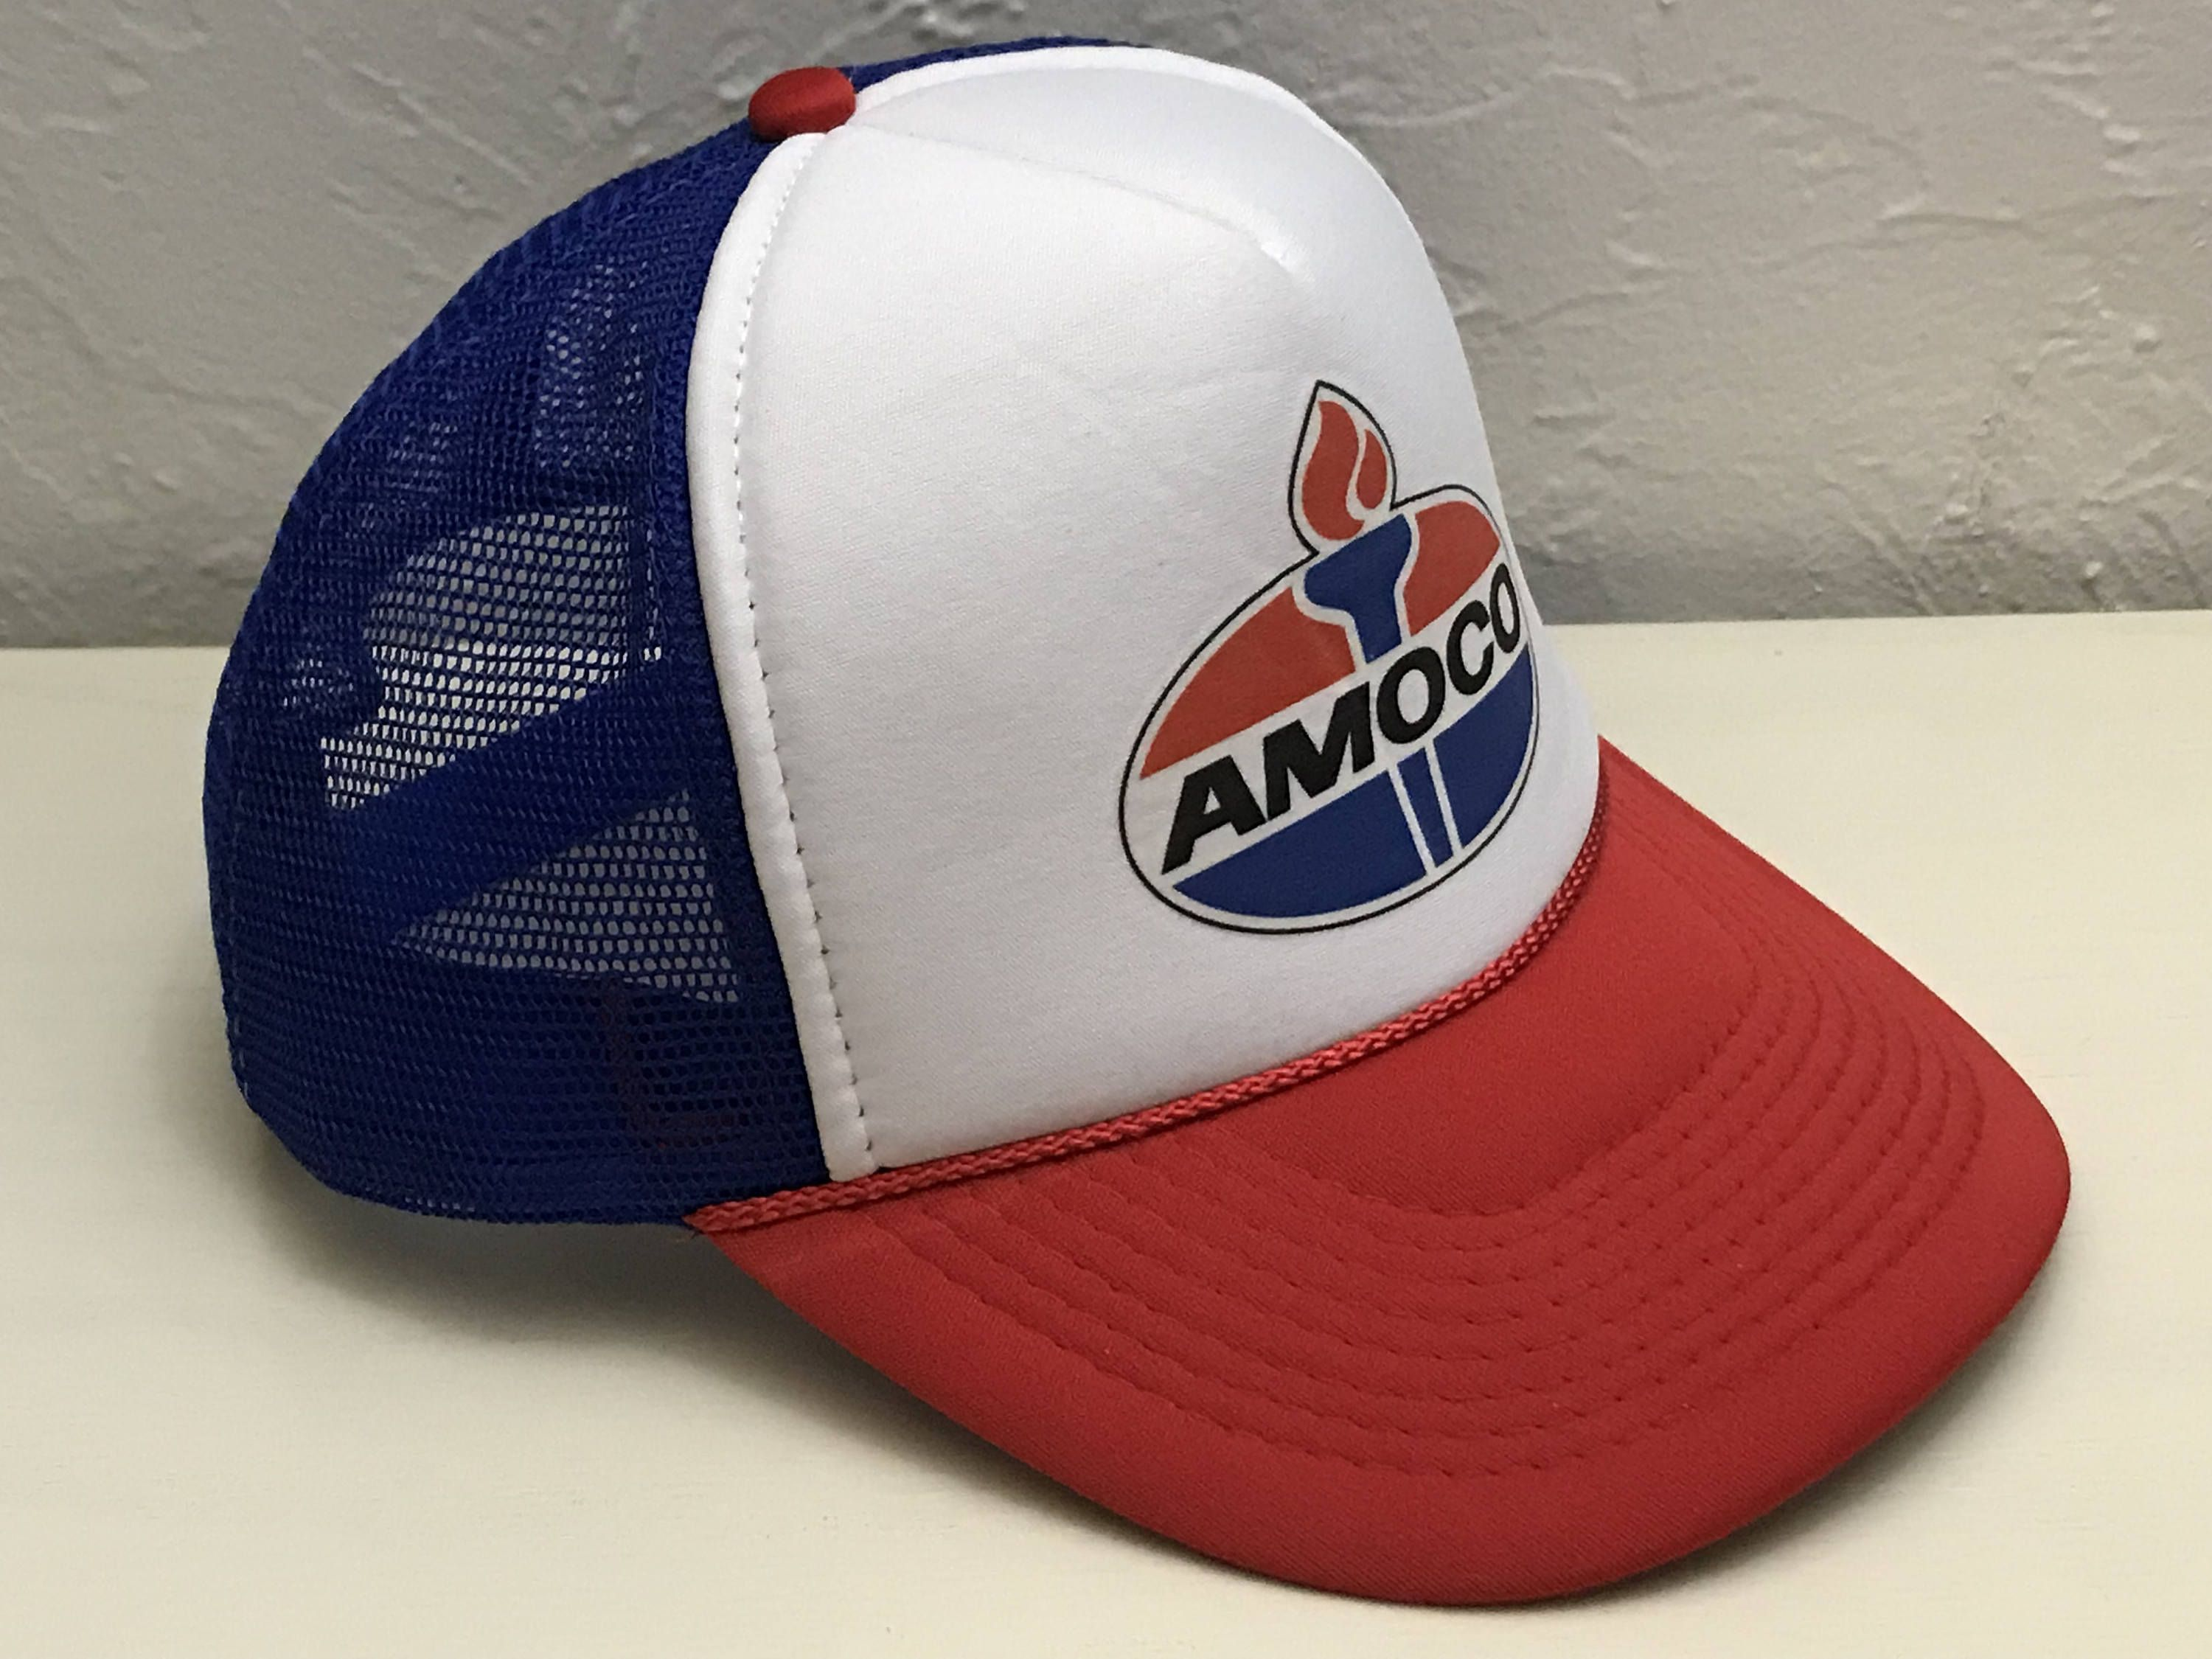 Vintage AMOCO Gasoline Trucker Hat   Red White and Blue Amoco Torch Logo    Mesh Snapback   Rad Retro Gas Station Oil Company Baseball Cap 49d16d226daf